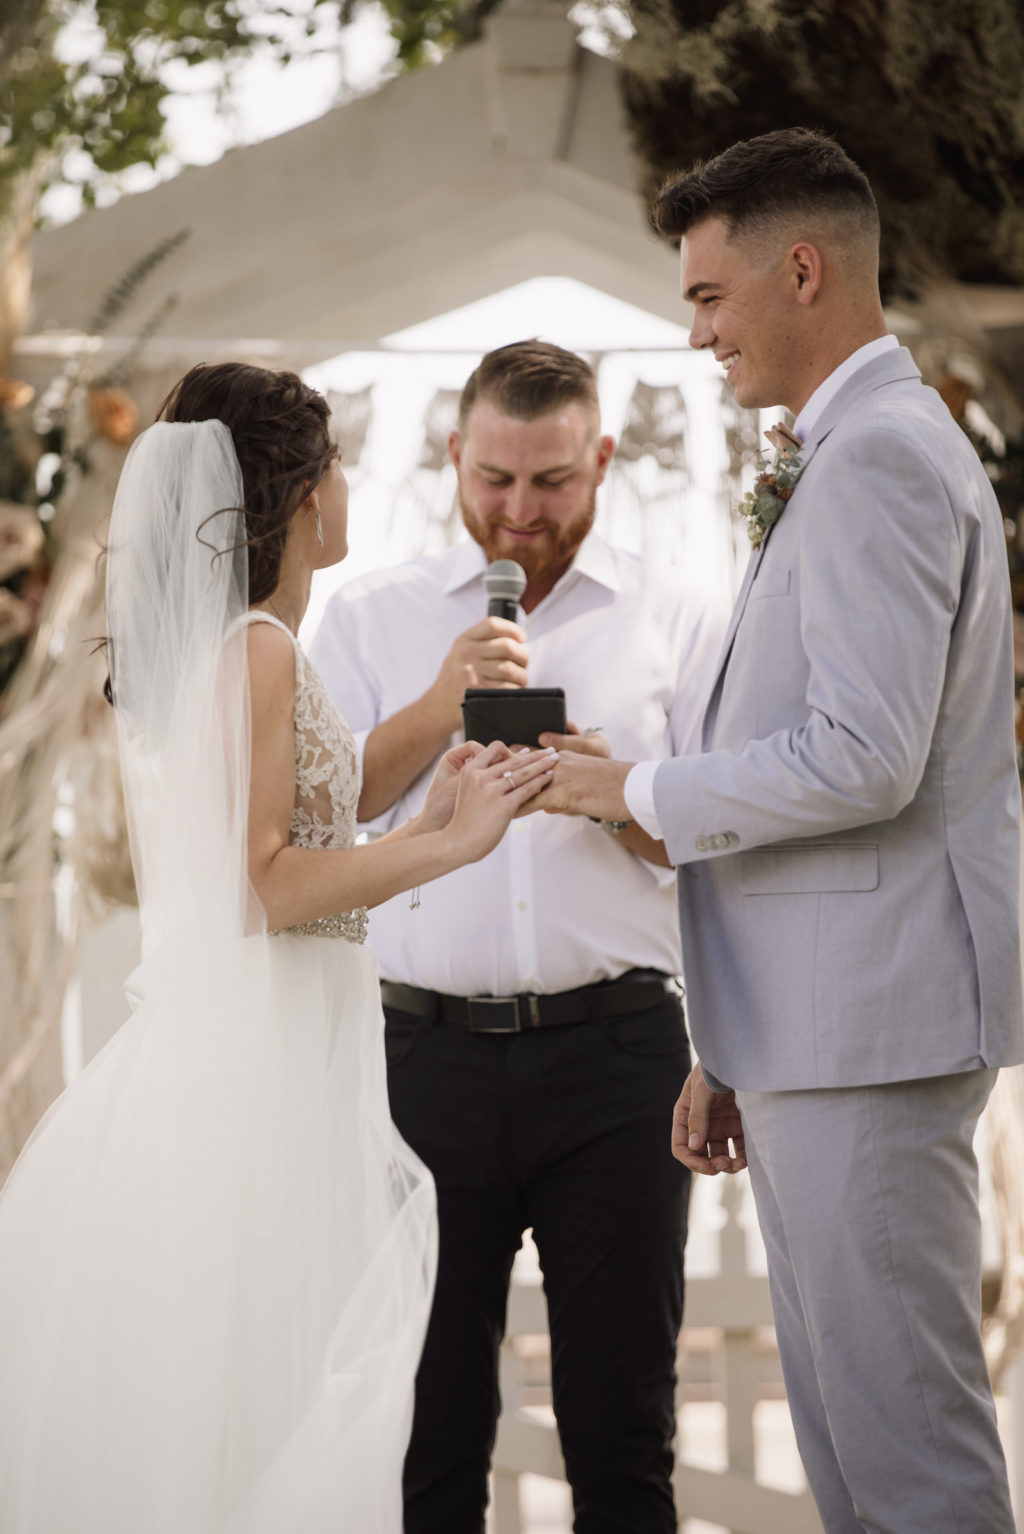 Bride and Groom Exchange Vows at Intimate Wedding Ceremony In Front of Wedding Officiant   Florida Wedding Ceremony